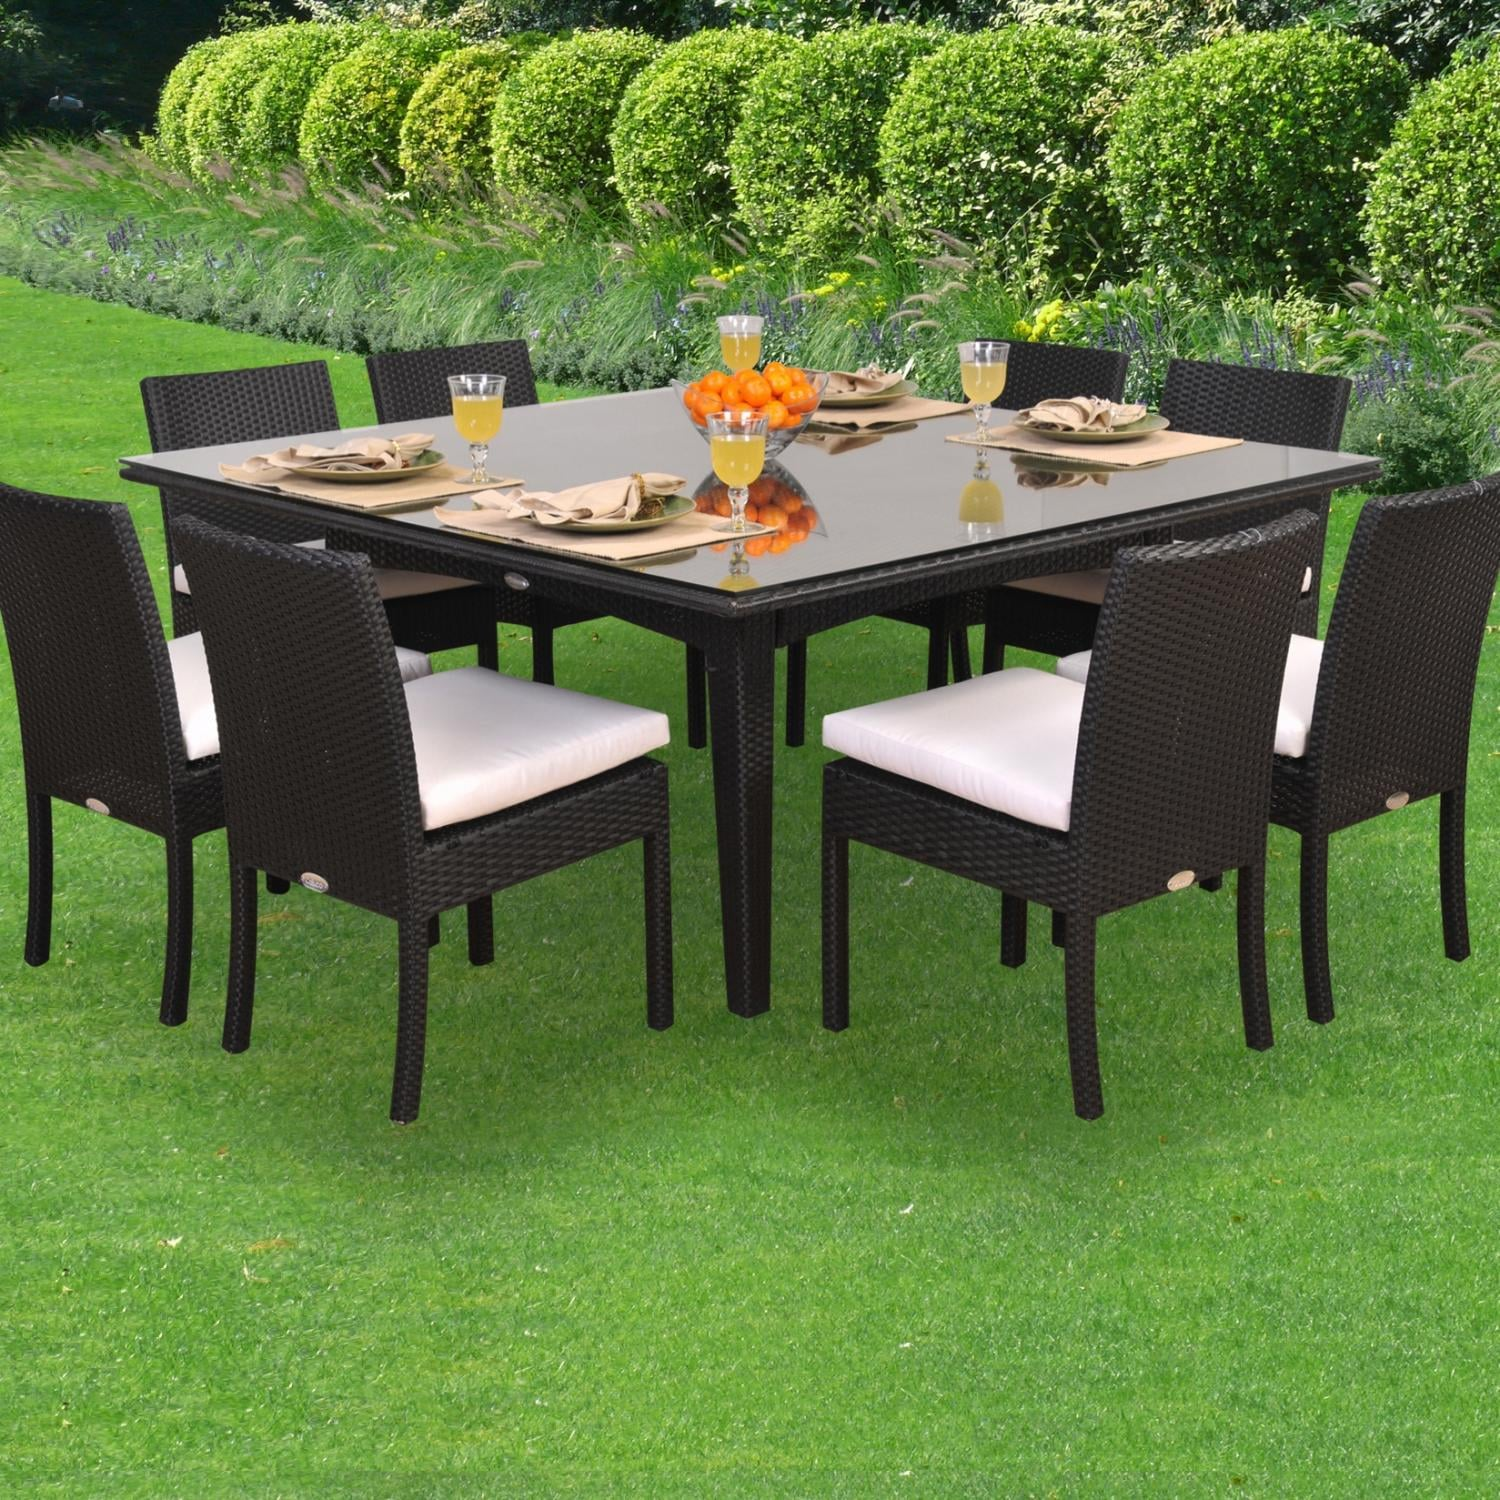 caluco maxime 8-person resin wicker patio dining set with glass